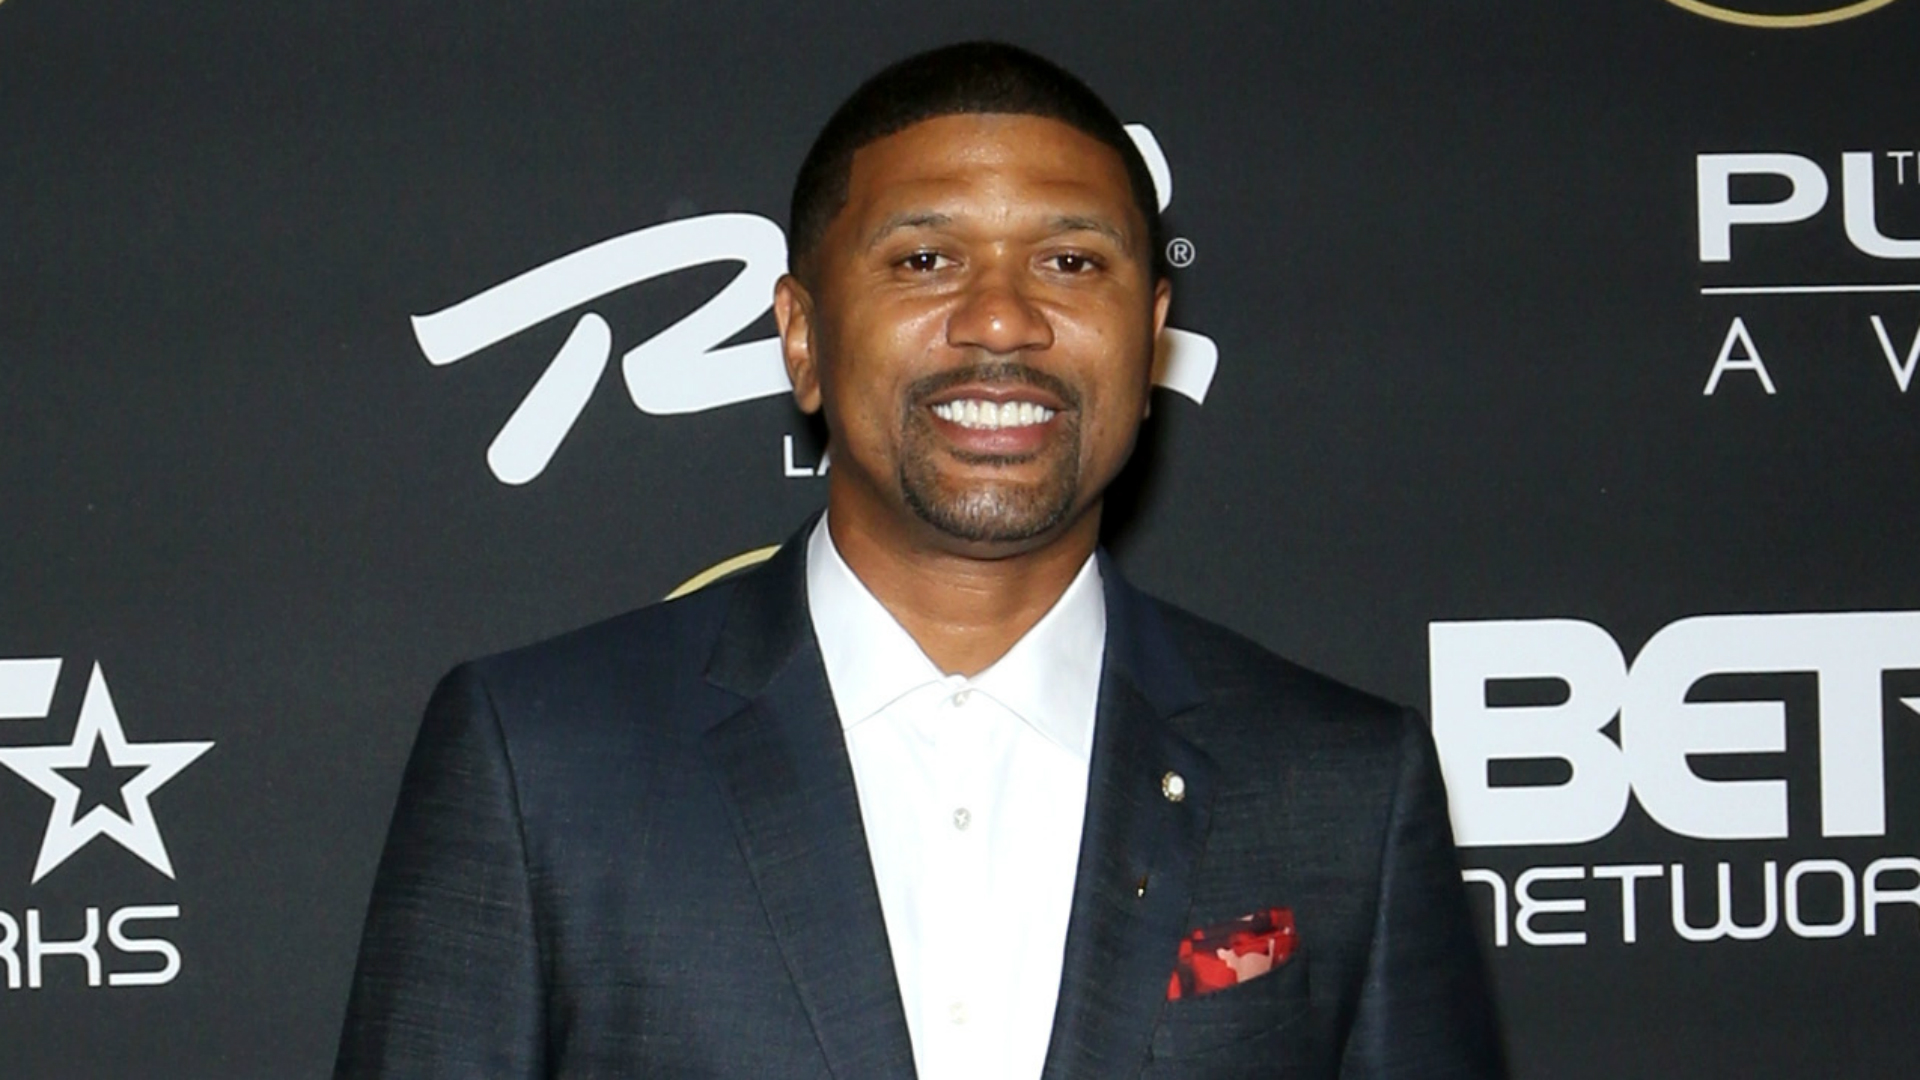 Jalen Rose gets perfectly burned by Kobe Bryant in new commercial